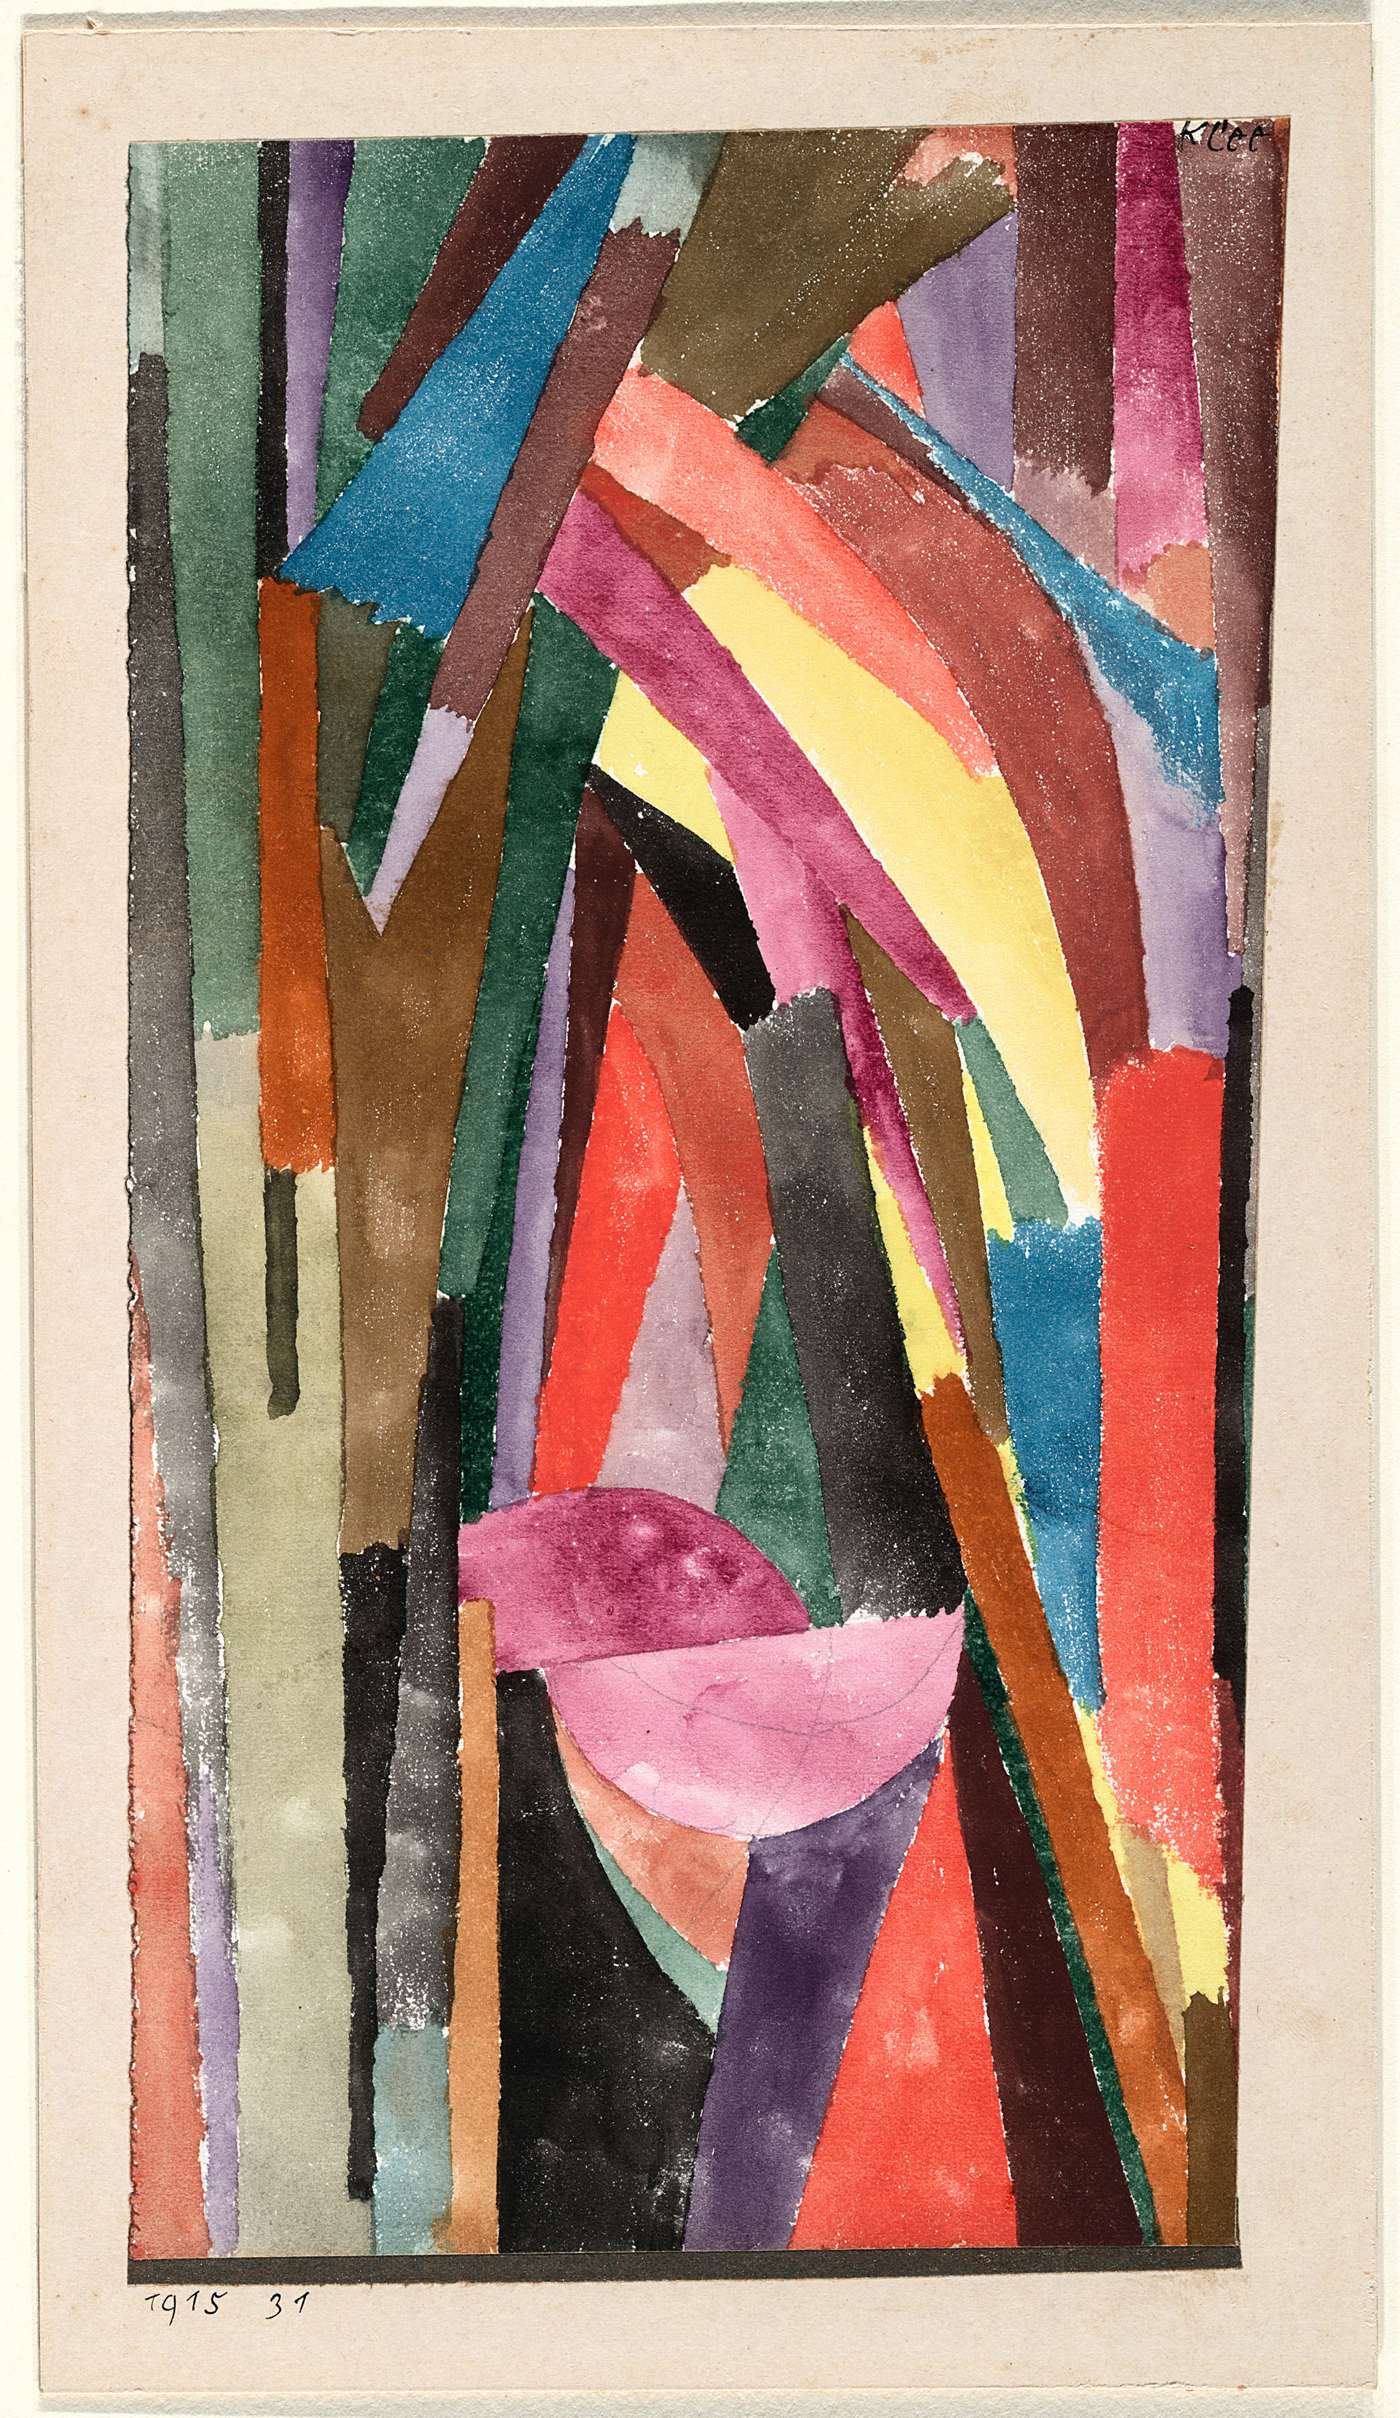 """Paul Klee, """"(Lustig?) [Lachende Gothik] [(Drôle?) [Gothique joyeux]]"""" (1915), watercolor and pastel on paper, metallic paper borders on card (courtesy the Museum of Modern Art, New York © 2016; digital image, The Museum of Modern Art, New York/Scala, Florence)"""